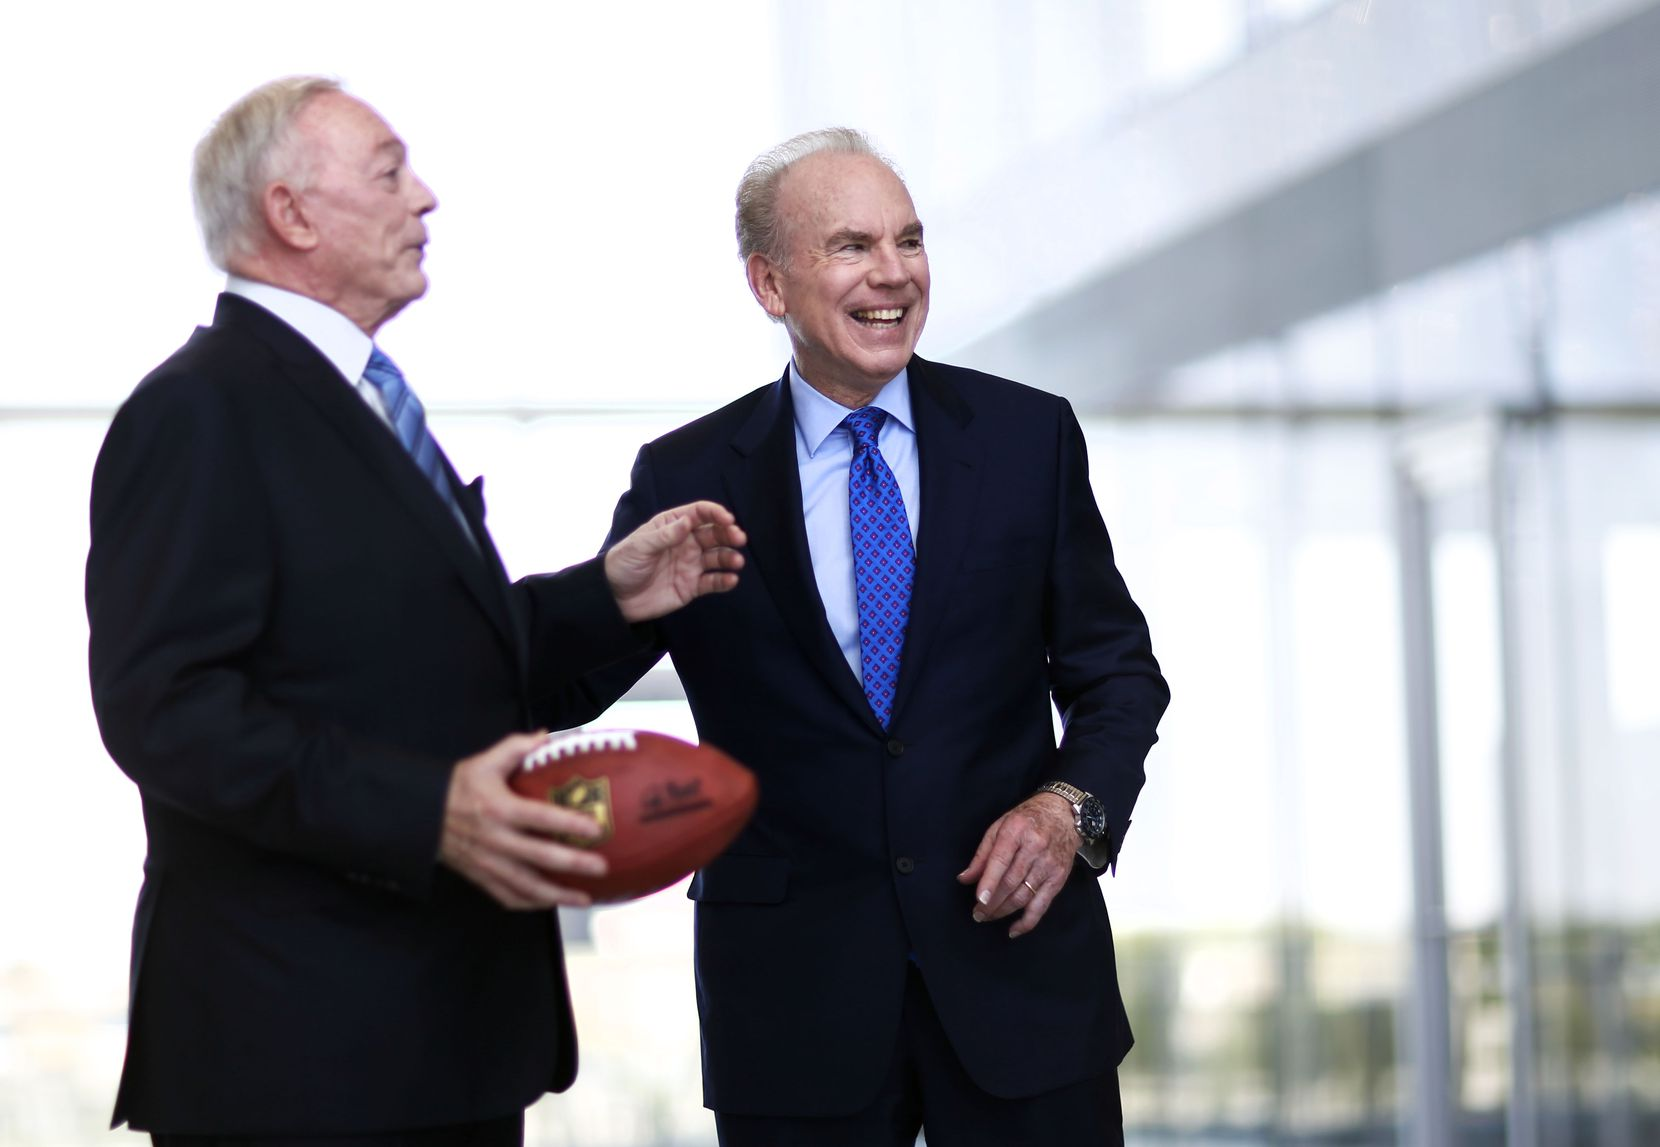 Former Dallas Cowboys quarterback Roger Staubach shares a laugh with Dallas Cowboys owner and general manager Jerry Jones at The Star in Frisco. Staubach and Jones are working together to build a high-rise apartment building.